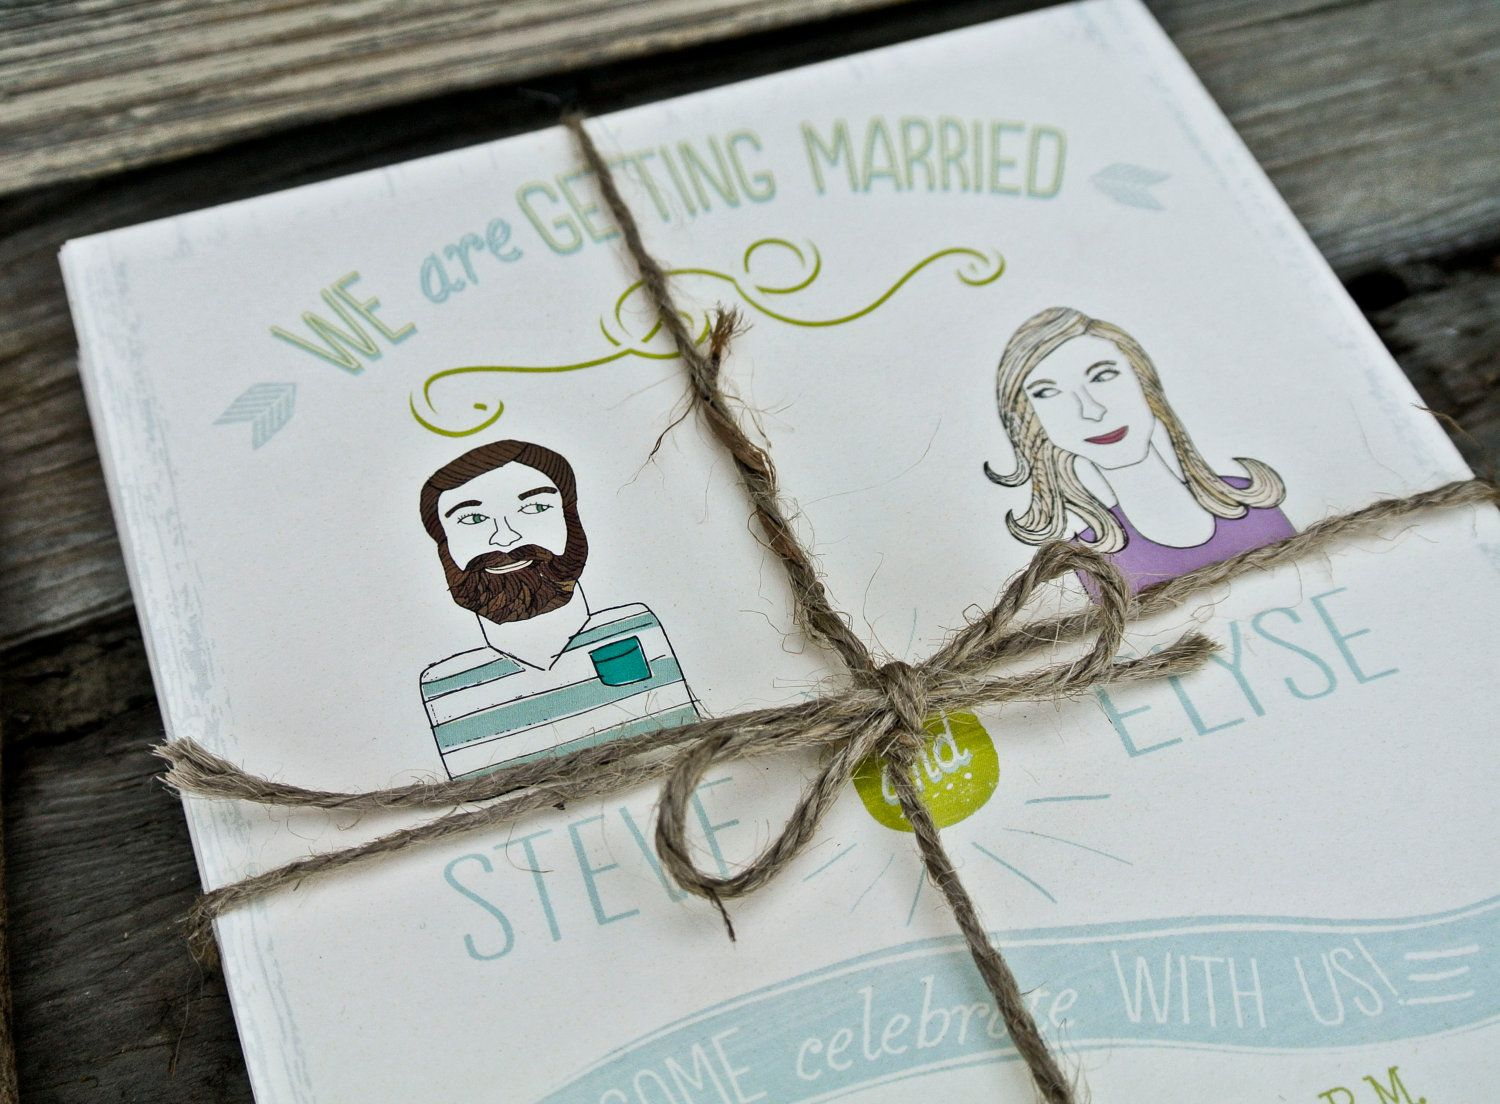 original wedding invitations - buscar con google | invitations, Wedding invitations